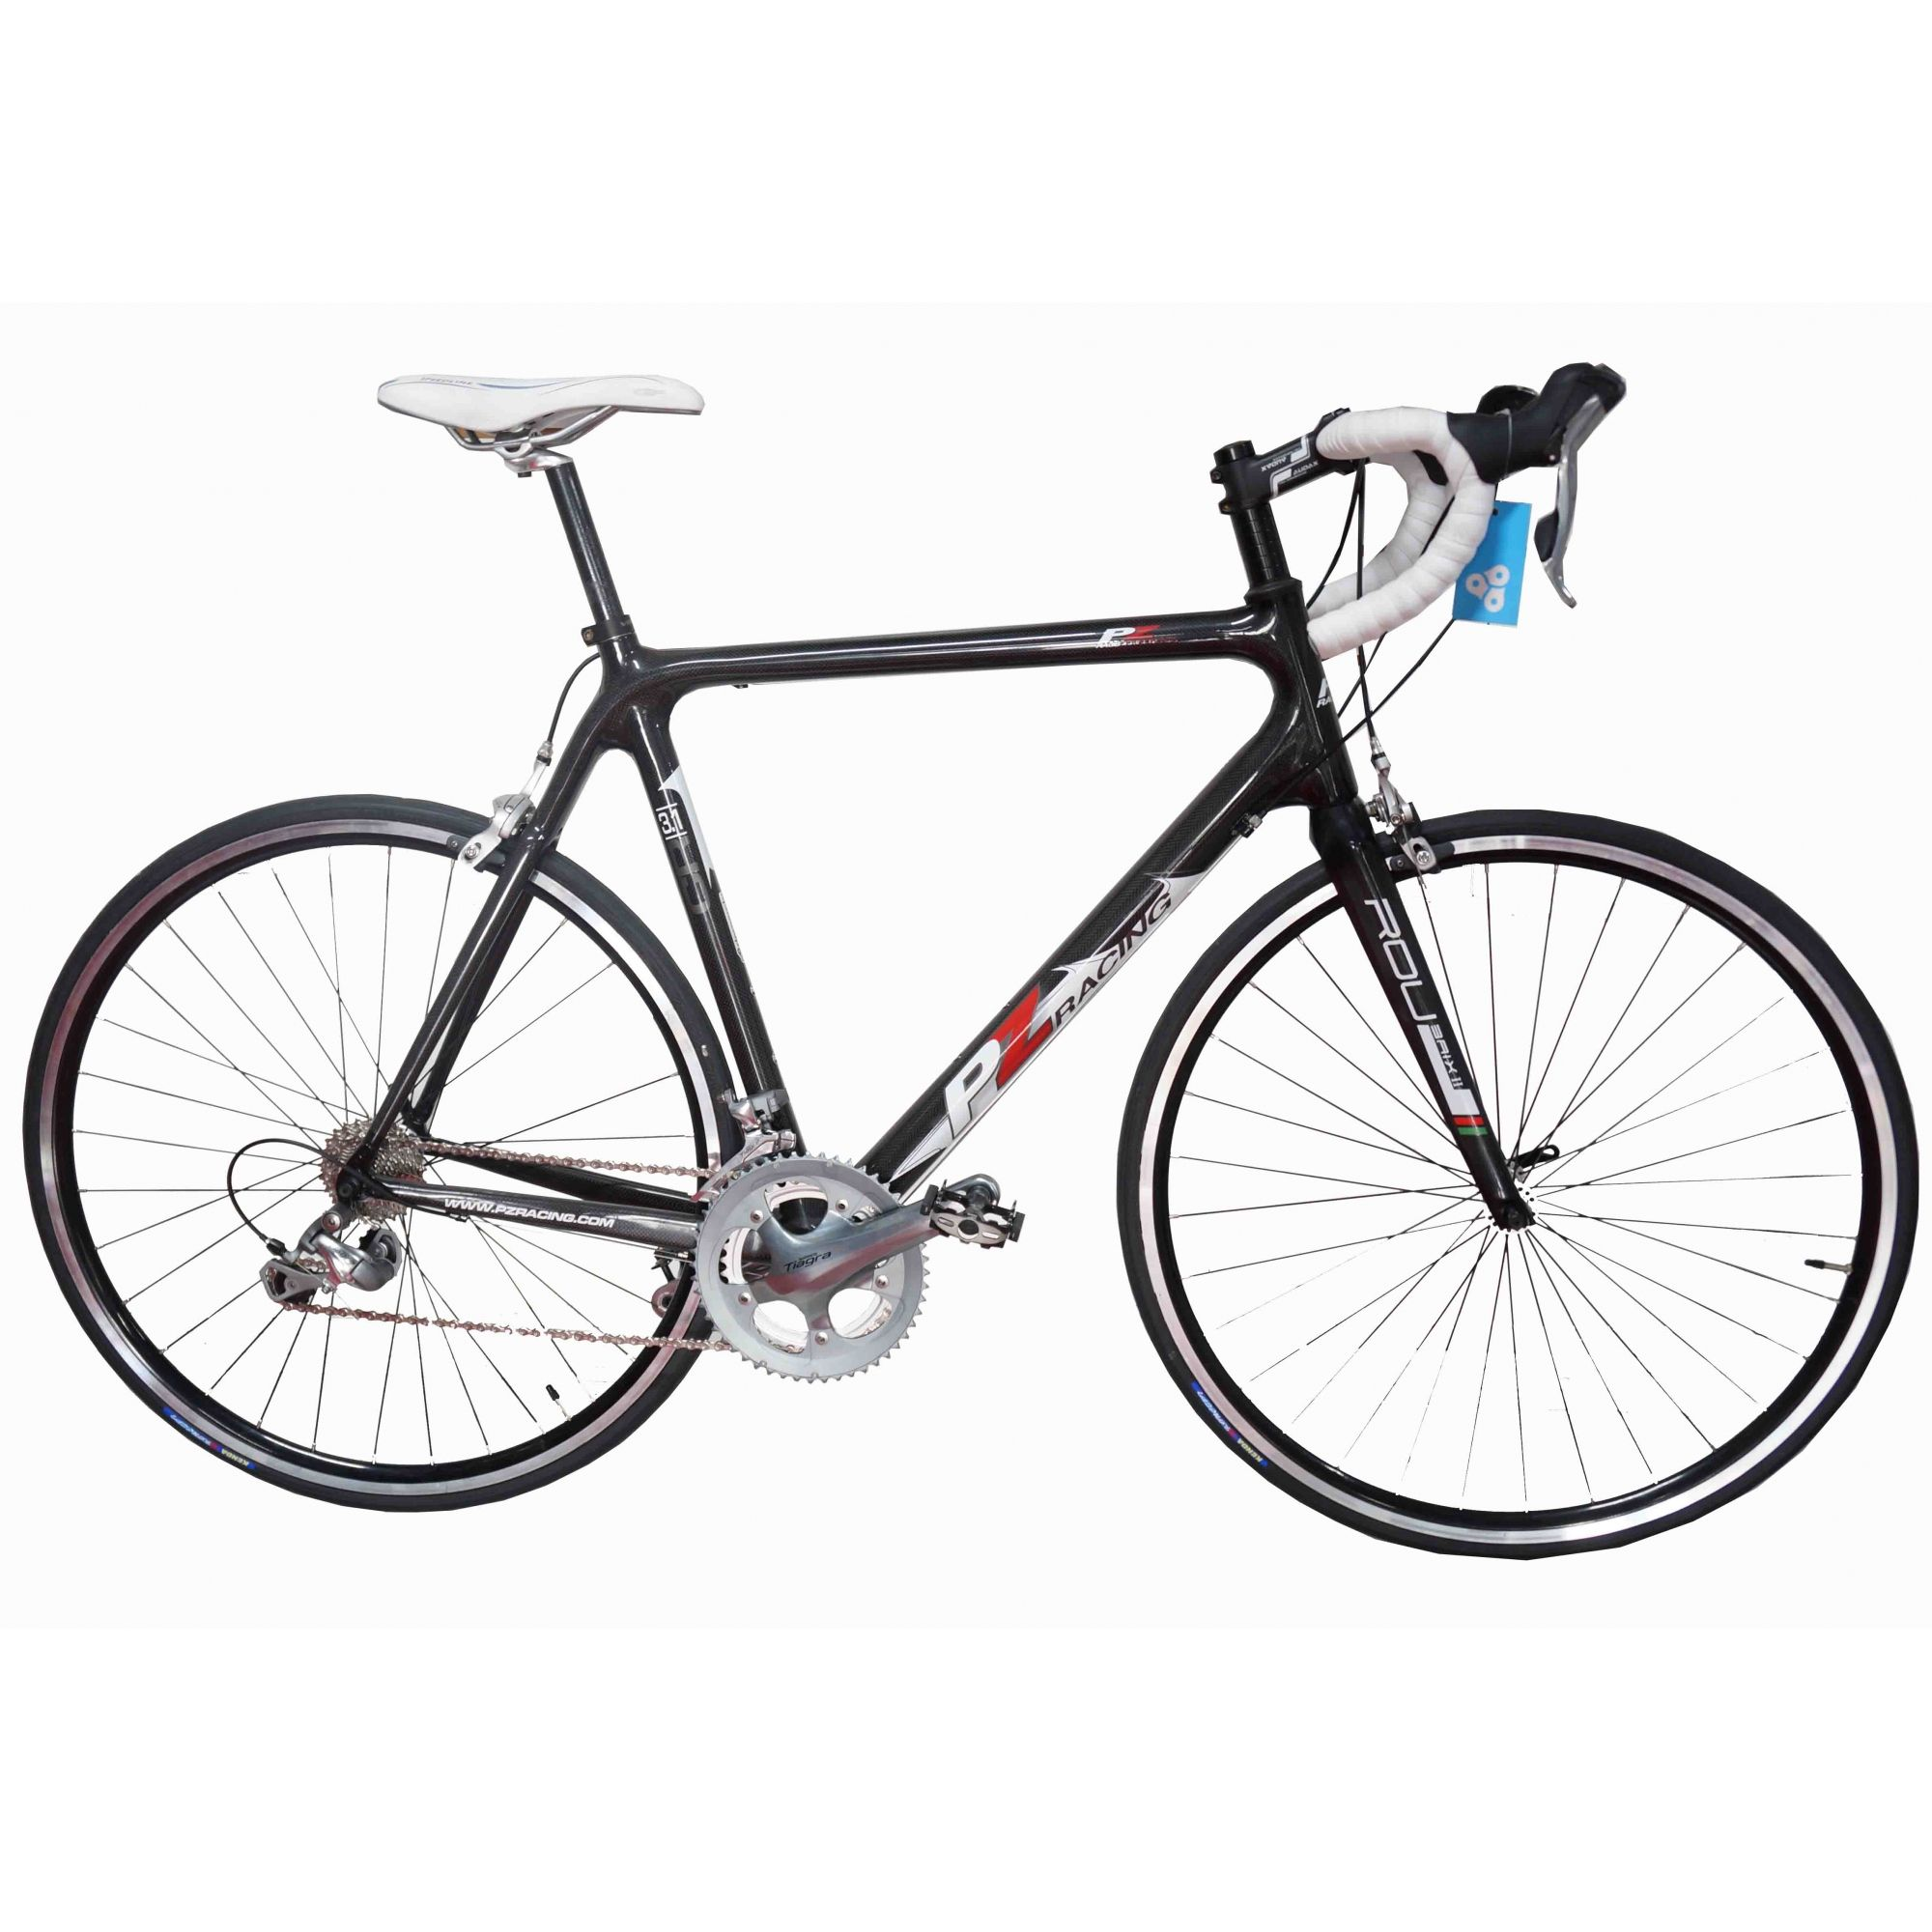 BICICLETA 700 PZ RACING 3.1 T.57 CARBONO